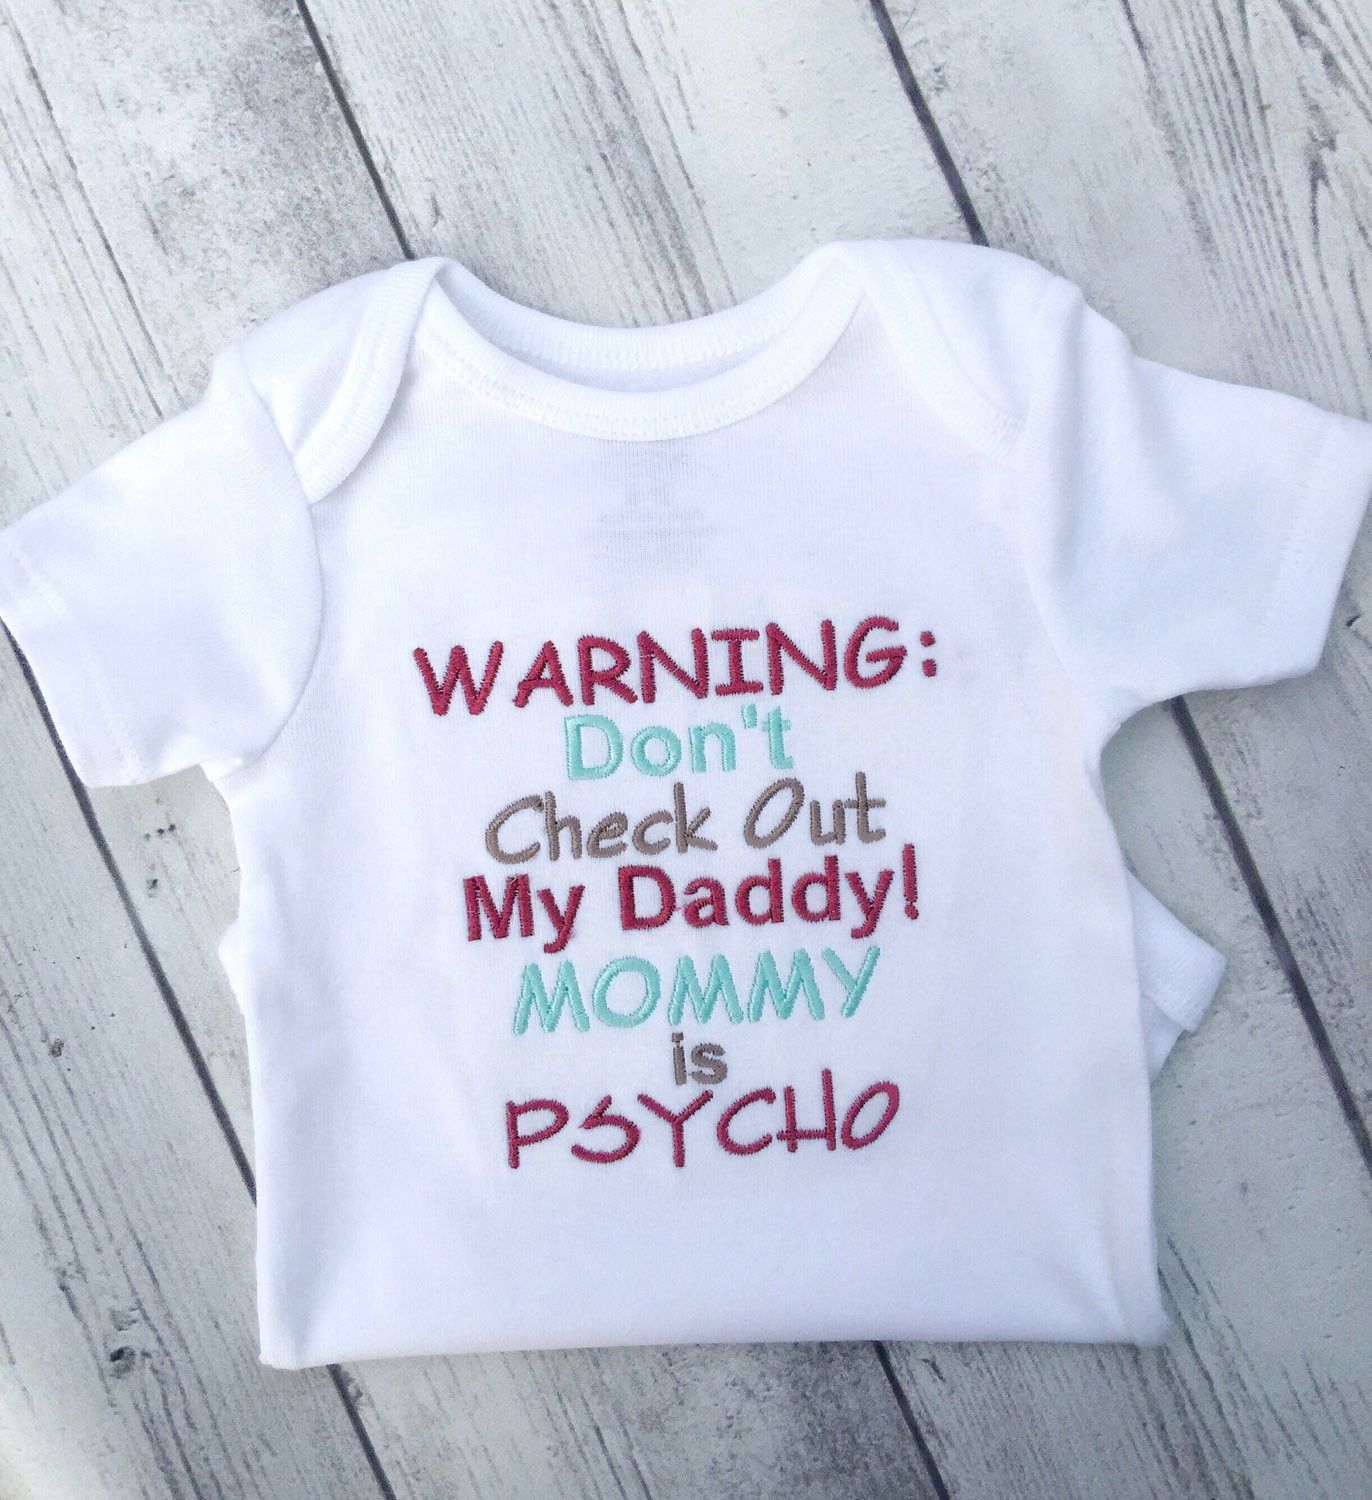 warning dont checkout my daddy mommy is pschyo ONE SIZE FUNNY COMICAL BIB